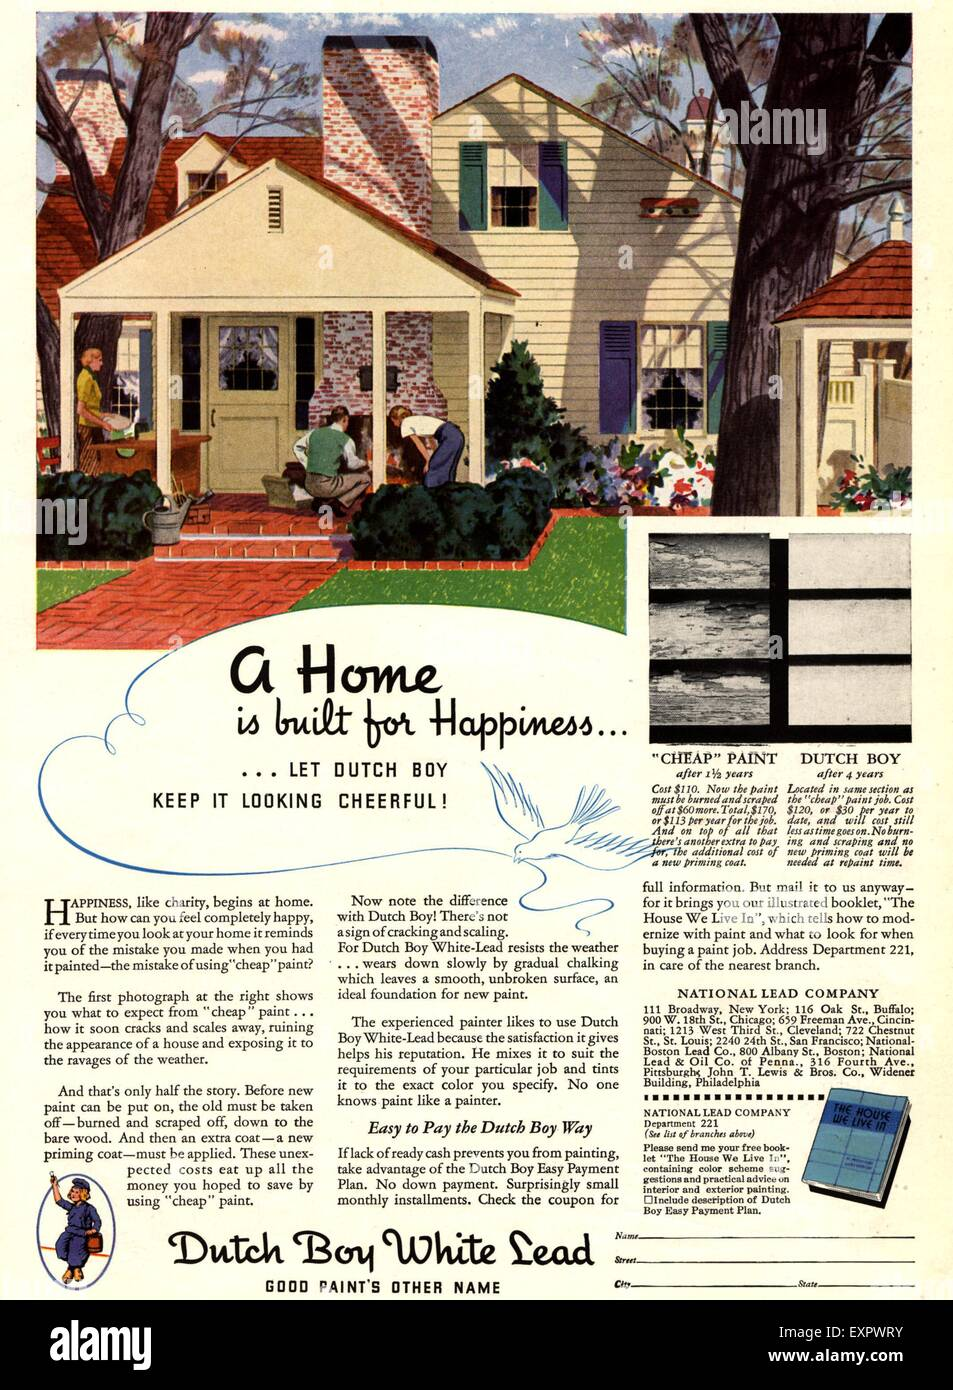 Home Magazines Usa 1930s usa ideal home magazine advert stock photo, royalty free